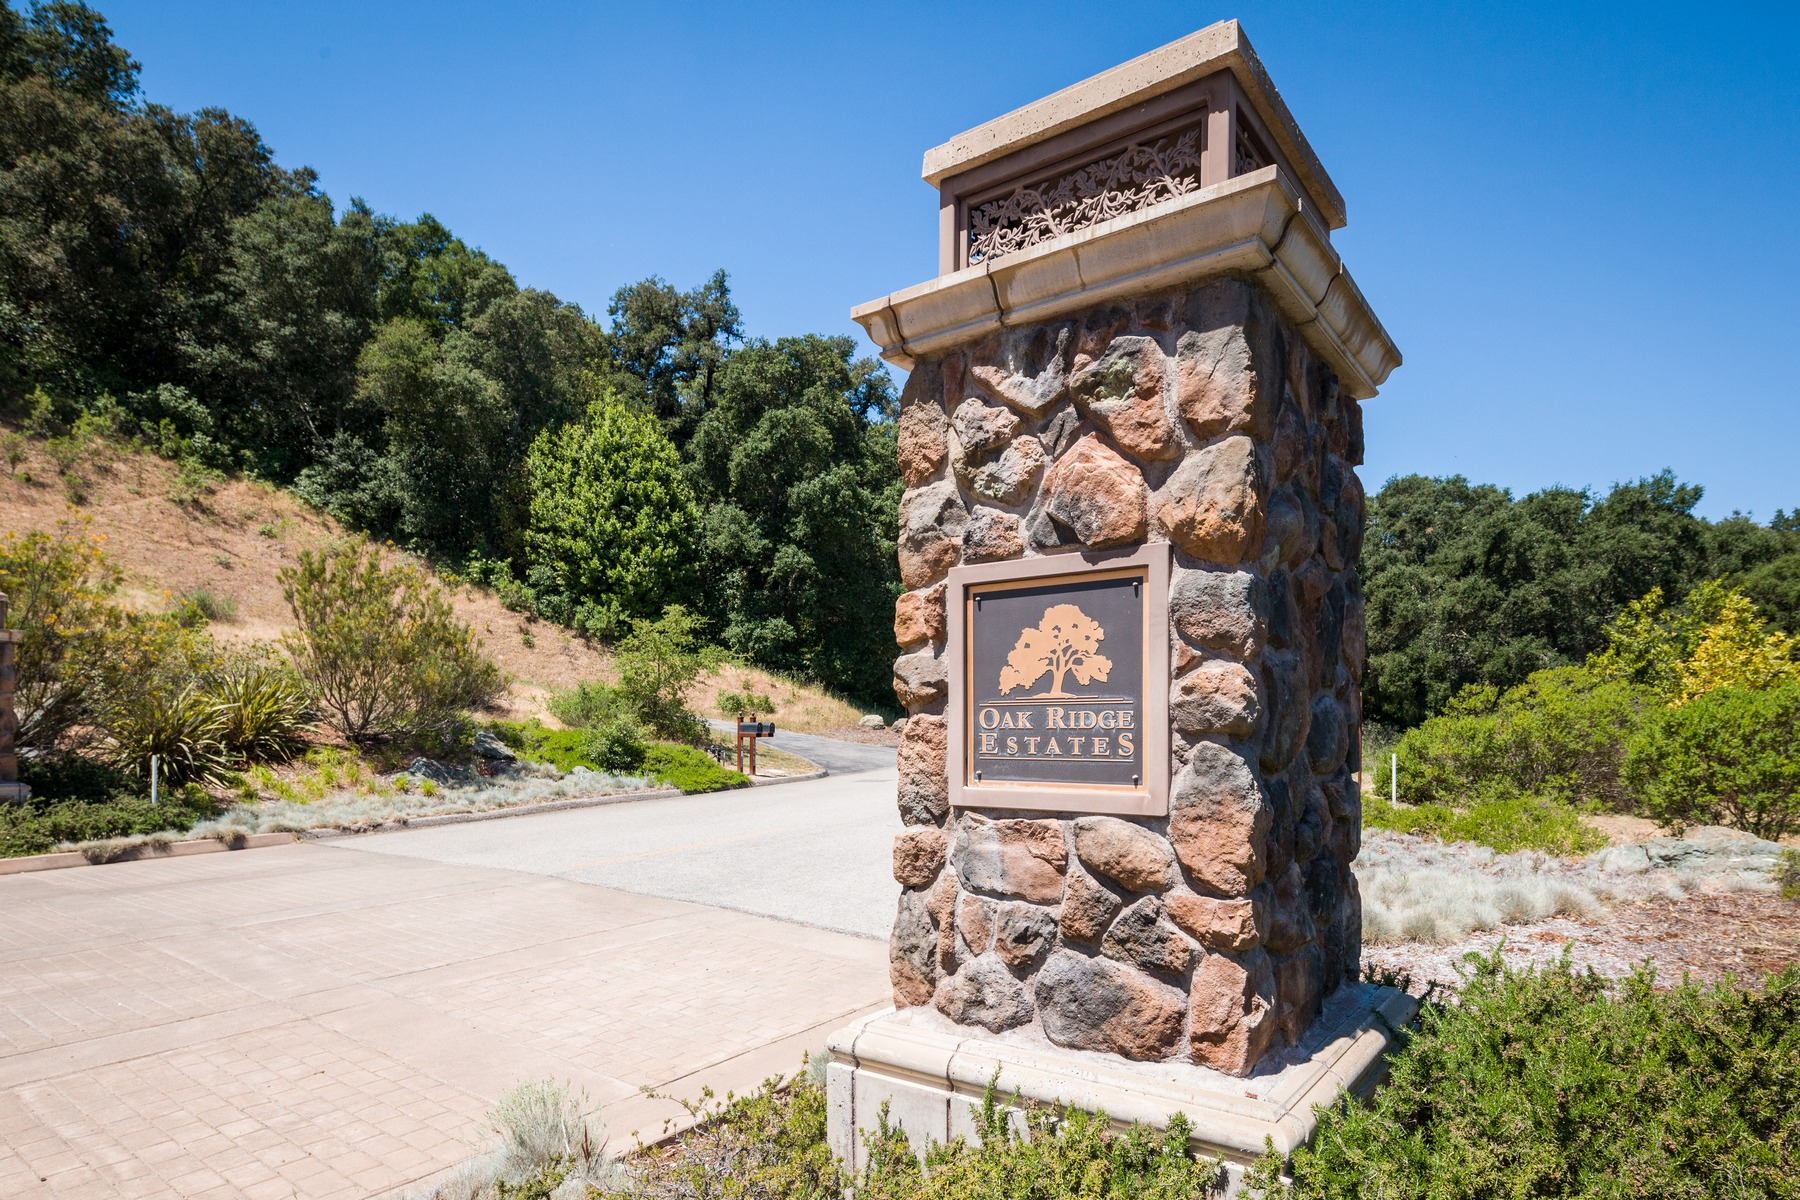 Additional photo for property listing at Private Hilltop Escape 12275 San Marcos Rd Atascadero, Kalifornien 93422 Vereinigte Staaten